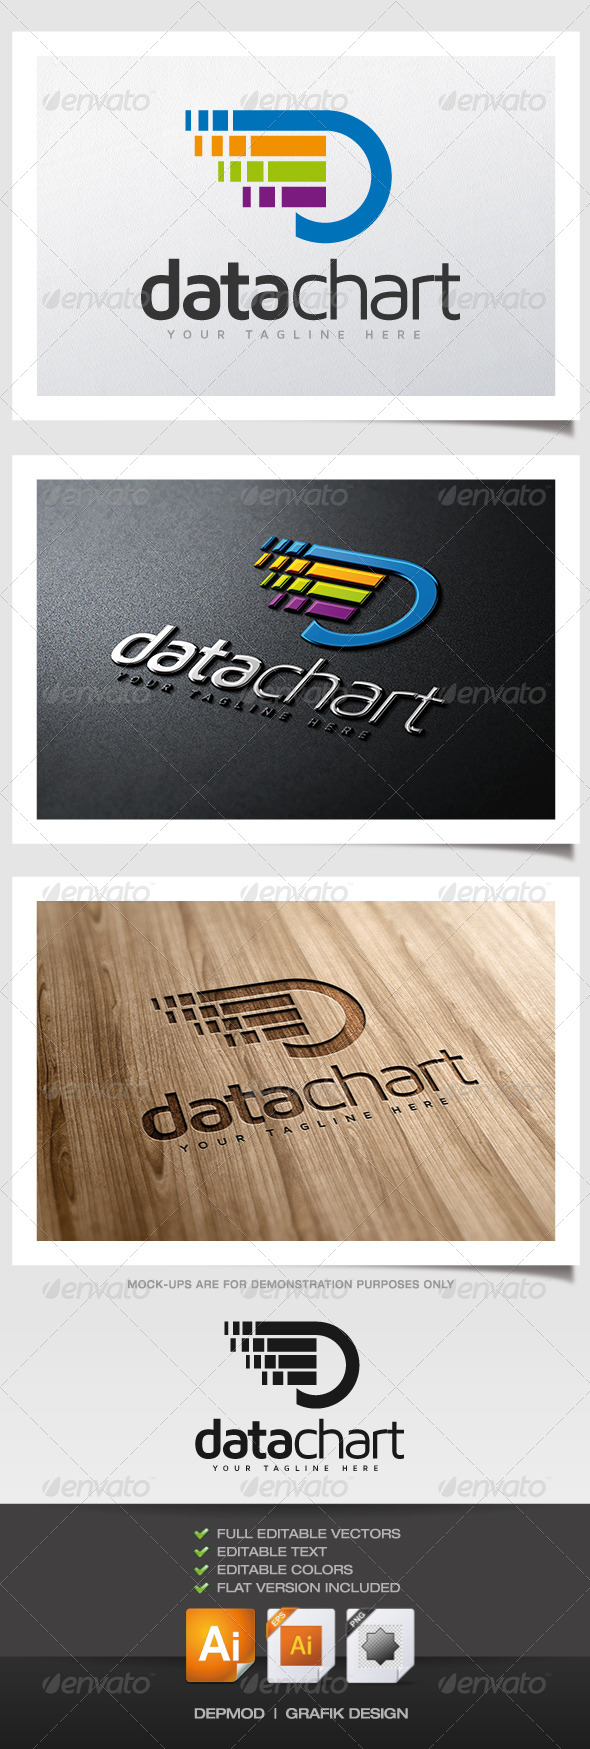 Data Chart Logo - Abstract Logo Templates